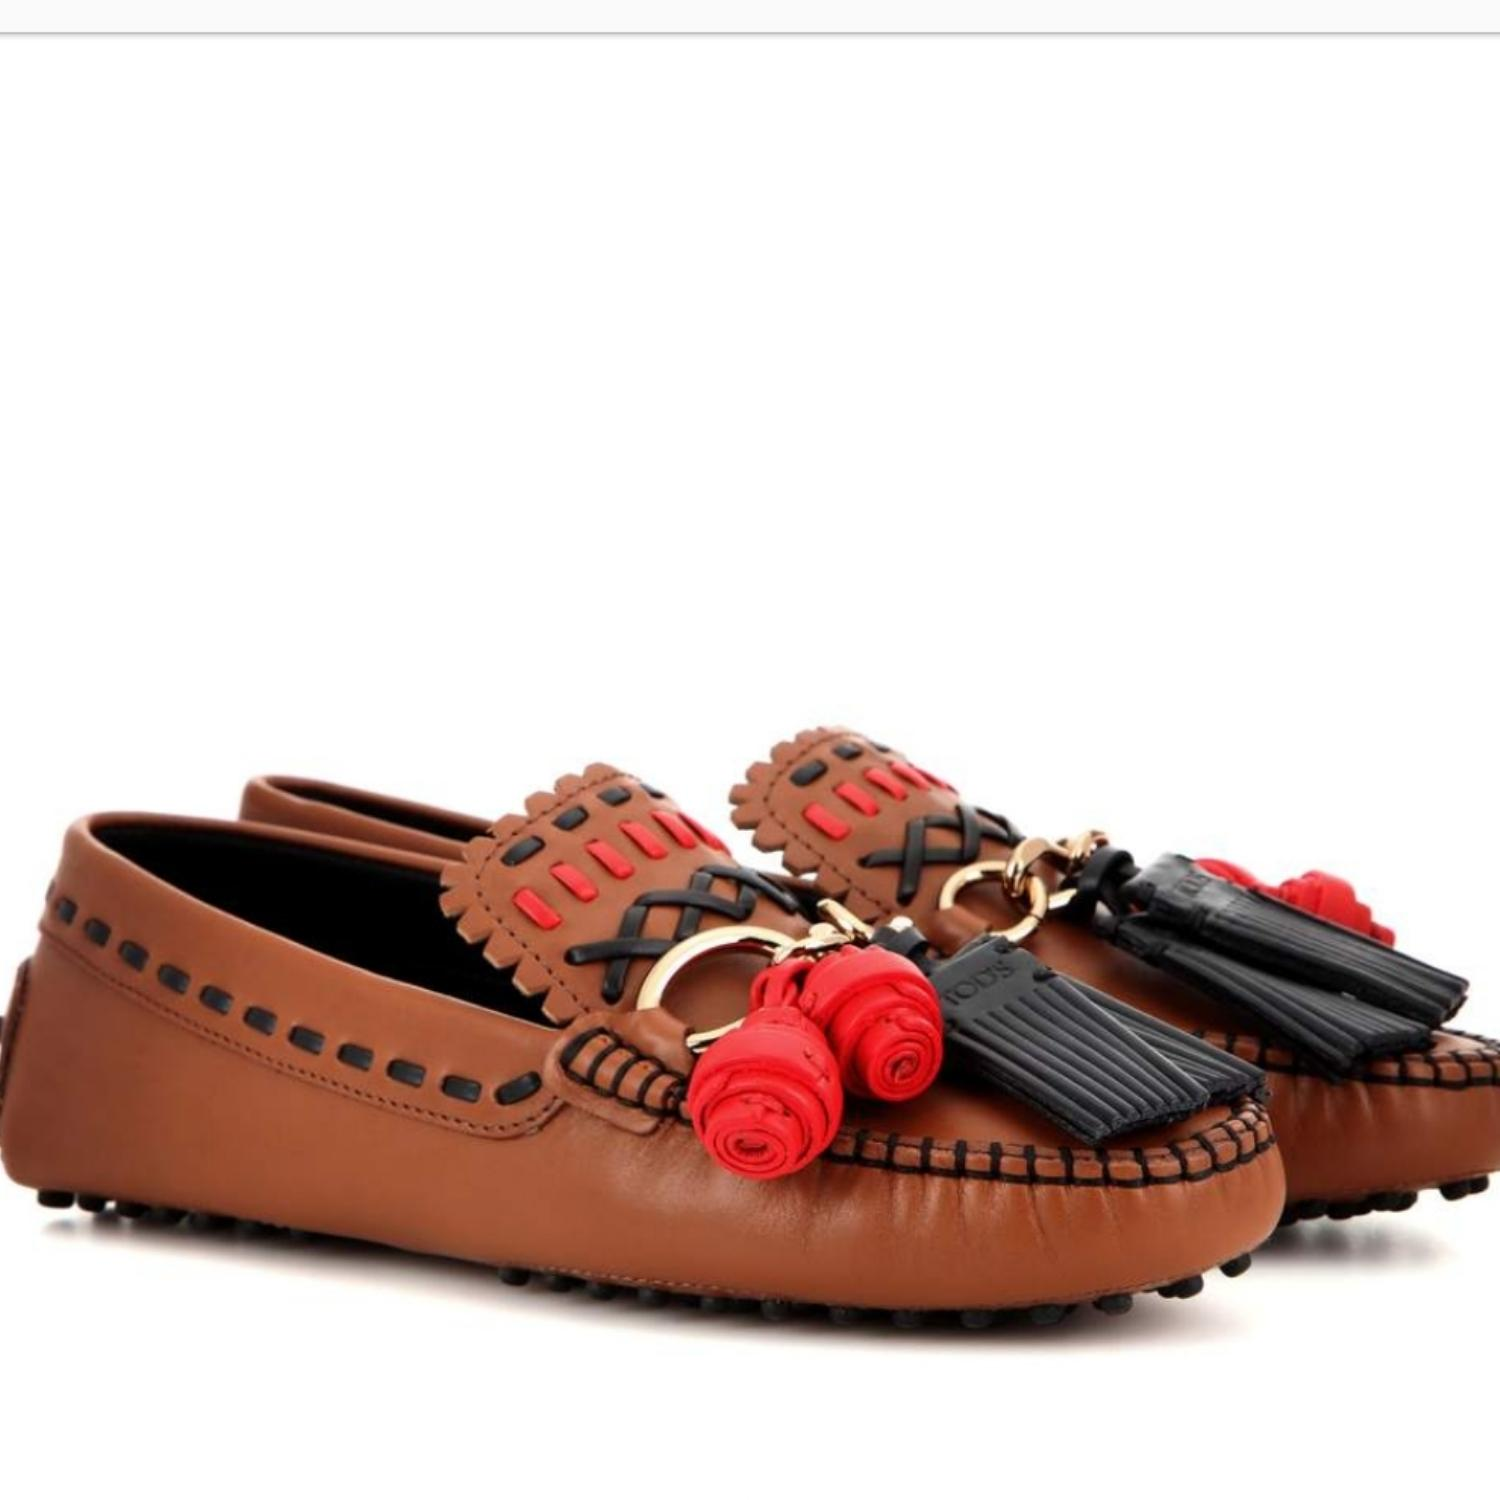 Tod's Camel. Coral. Black. Gold. Gommino Gipsy Driving Moc Flats Size US 10 Regular (M, B)